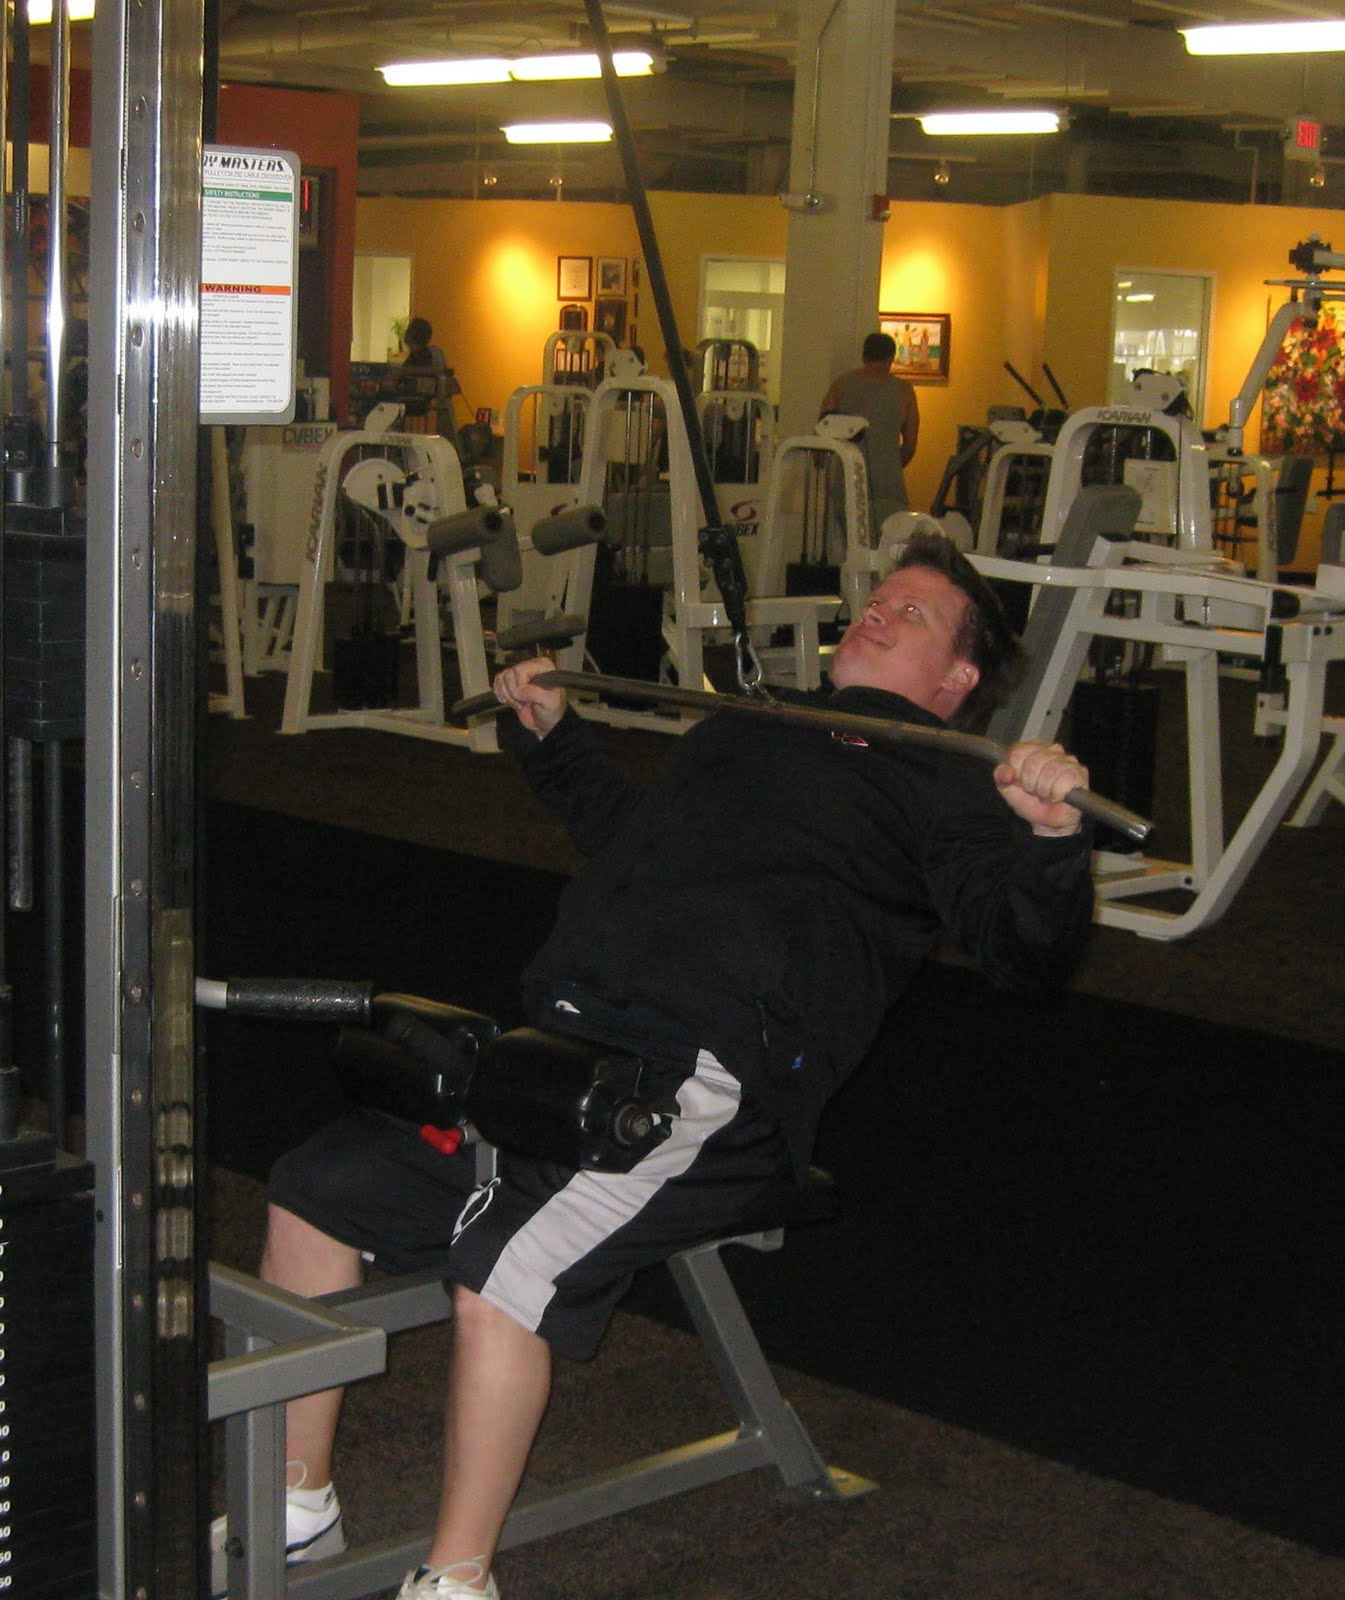 gym visit 24 hour fitness is the perfect gym for people who want it all: the best fitness classes, premium gym amenities and much more try a 24 hour fitness gym near you.